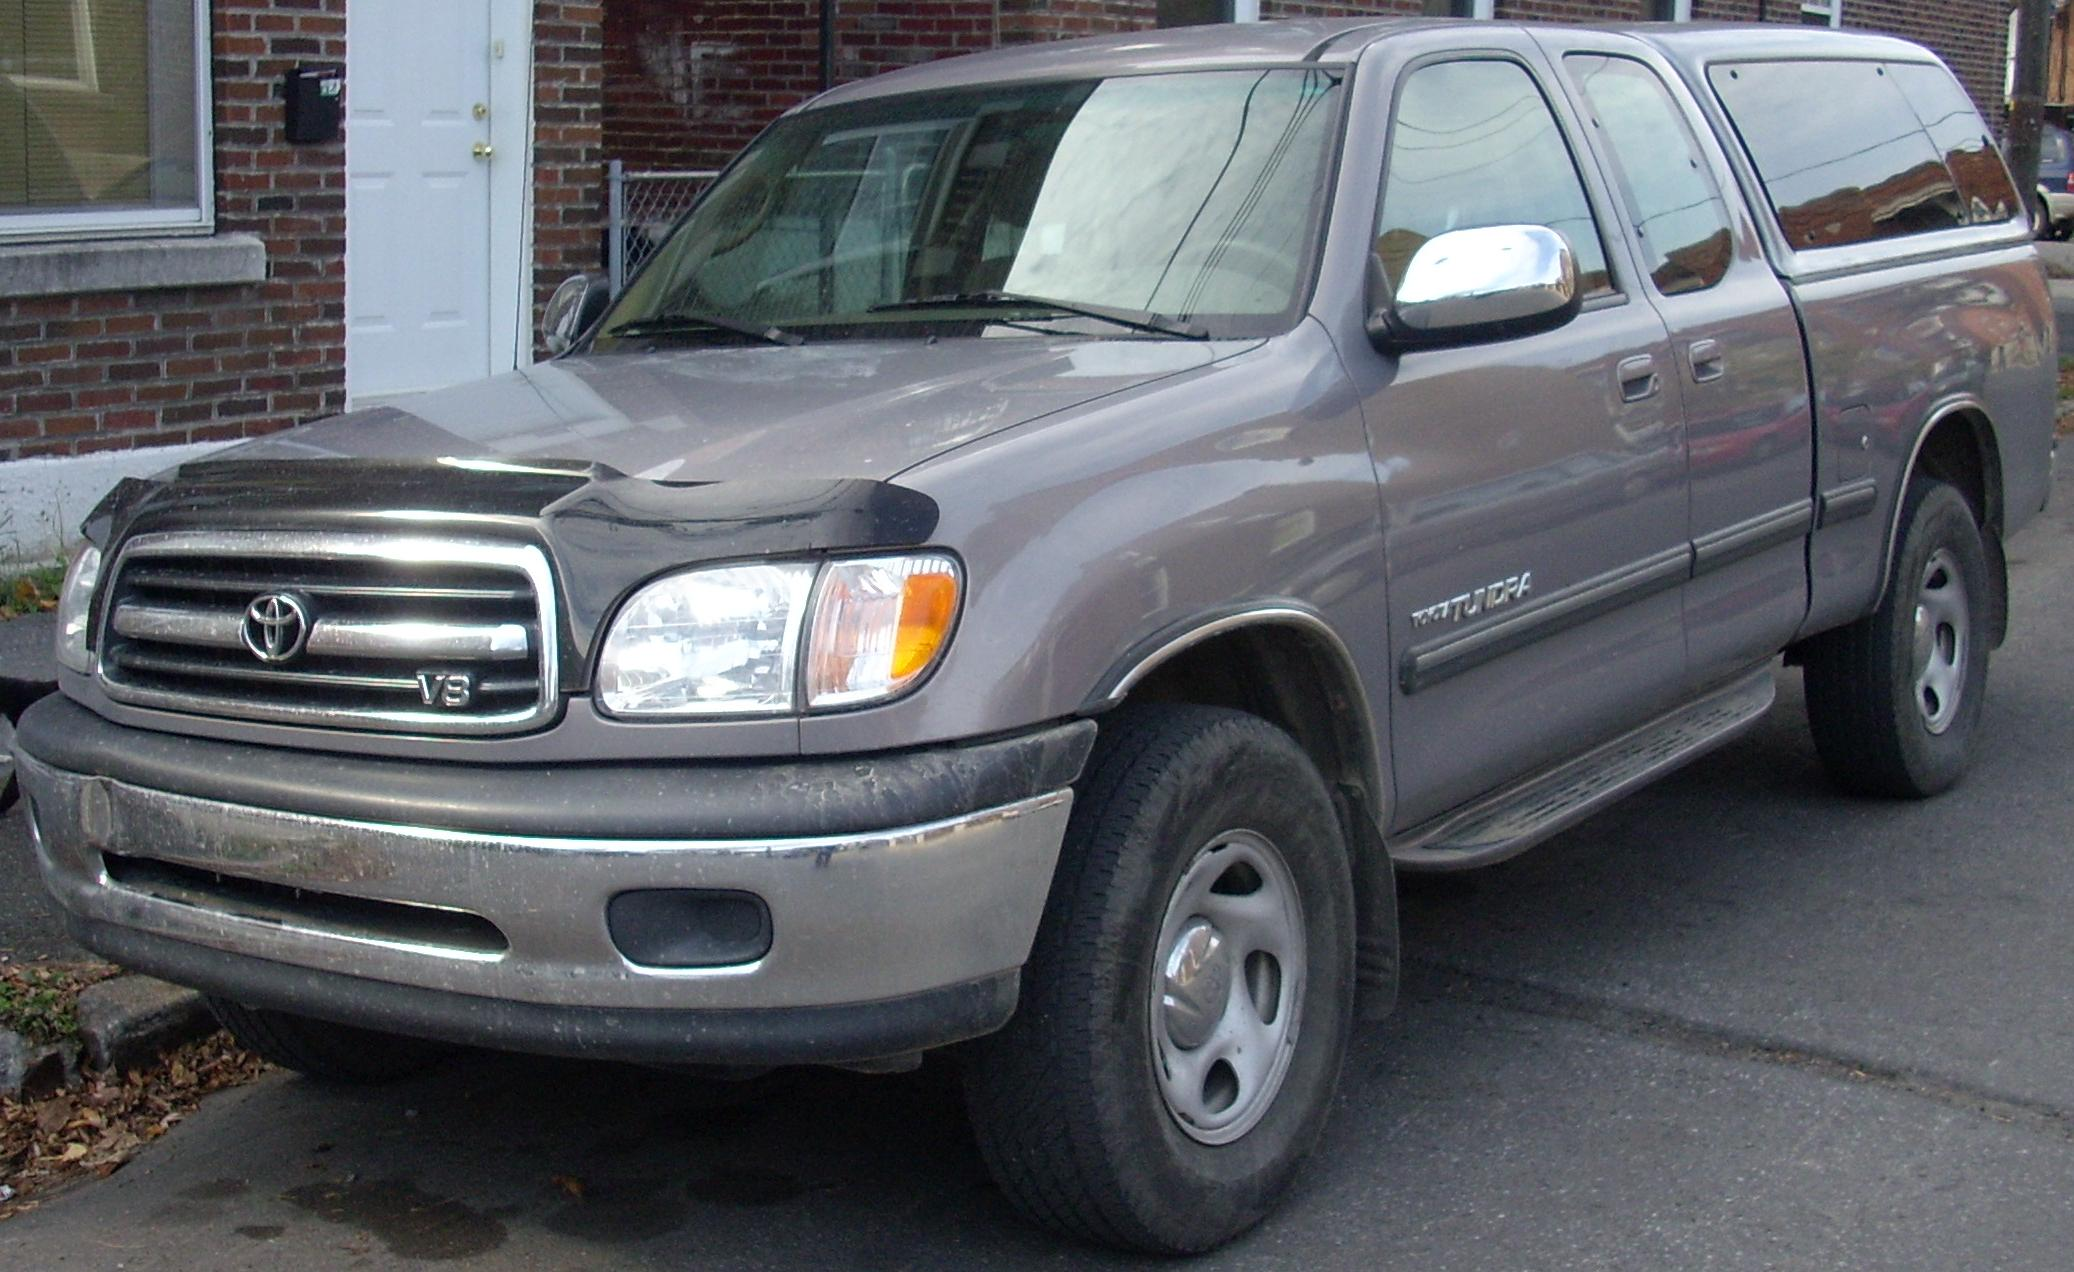 File:'00-'02 Toyota Tundra Extended Cab.jpg - Wikimedia Commons